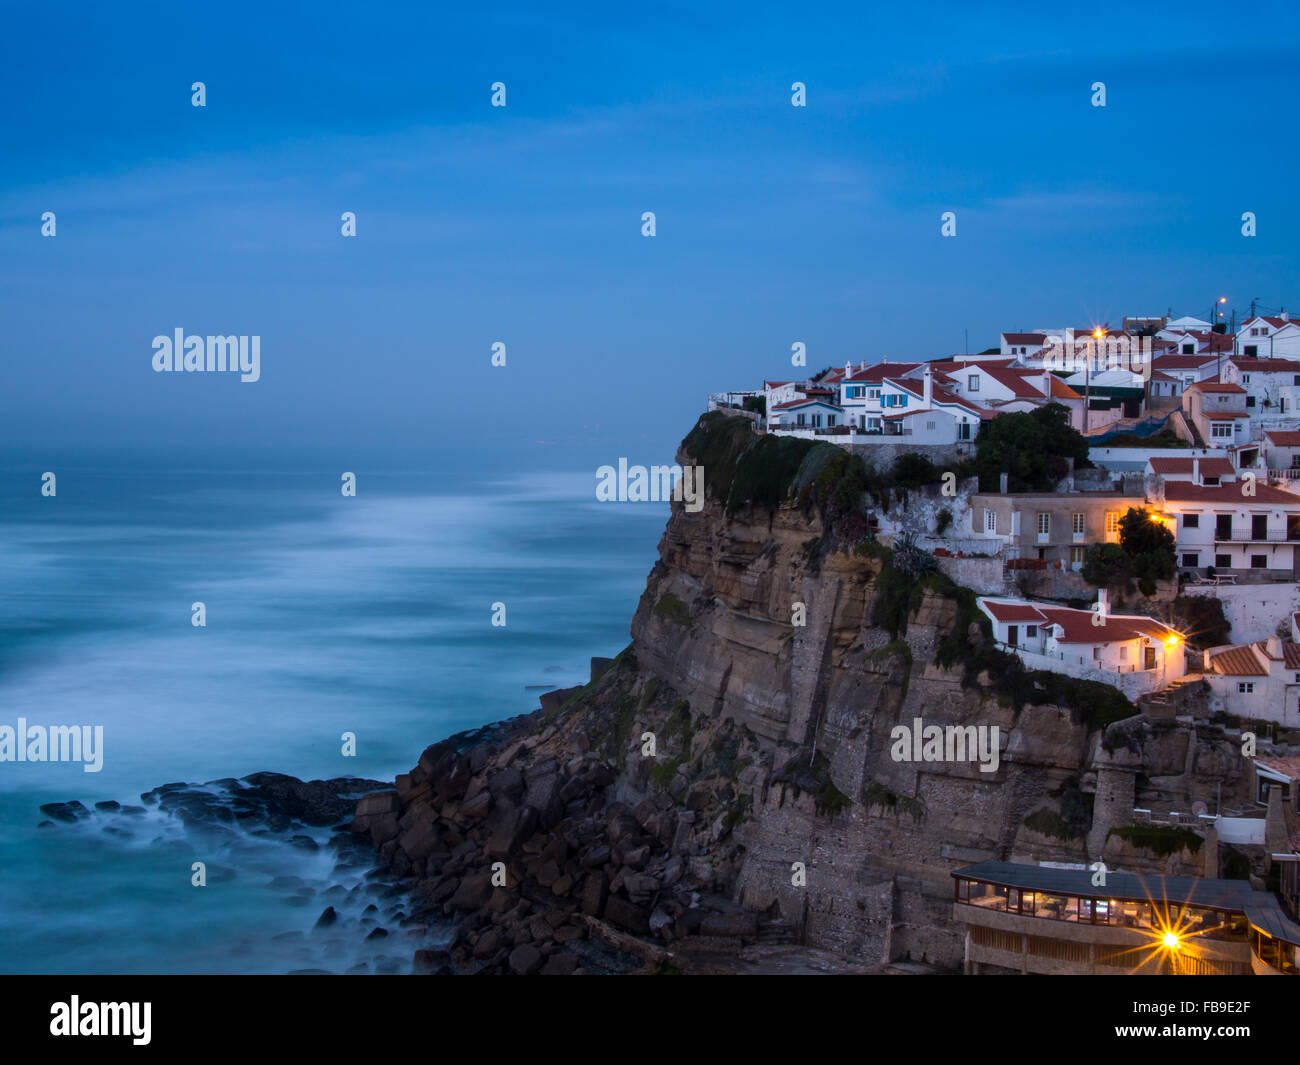 Azenhas do Mar village at dusk, Sintra Portugal - Stock Image